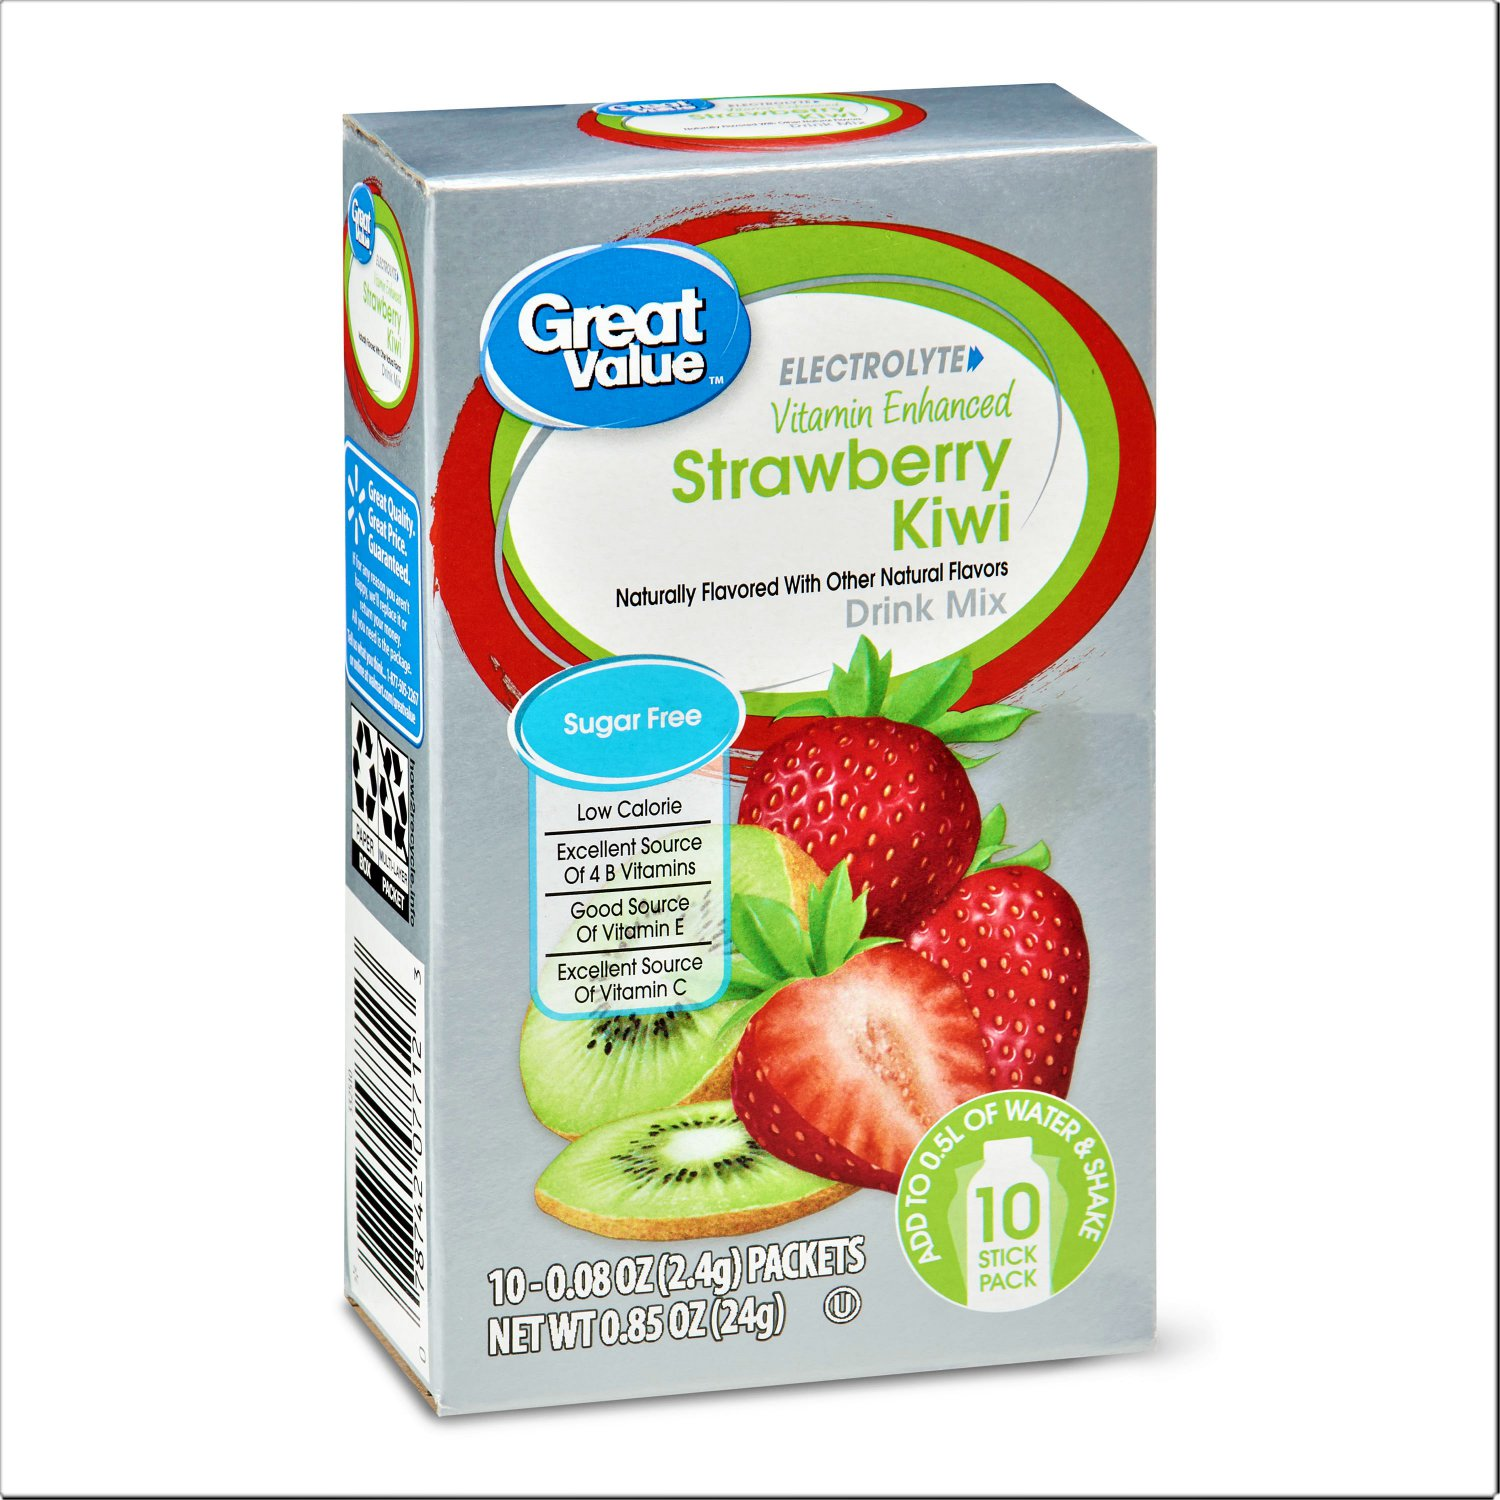 8 Boxes Great Value Electrolyte Vitamin Enhanced Strawberry Kiwi Drink Mix (10 Count Box)